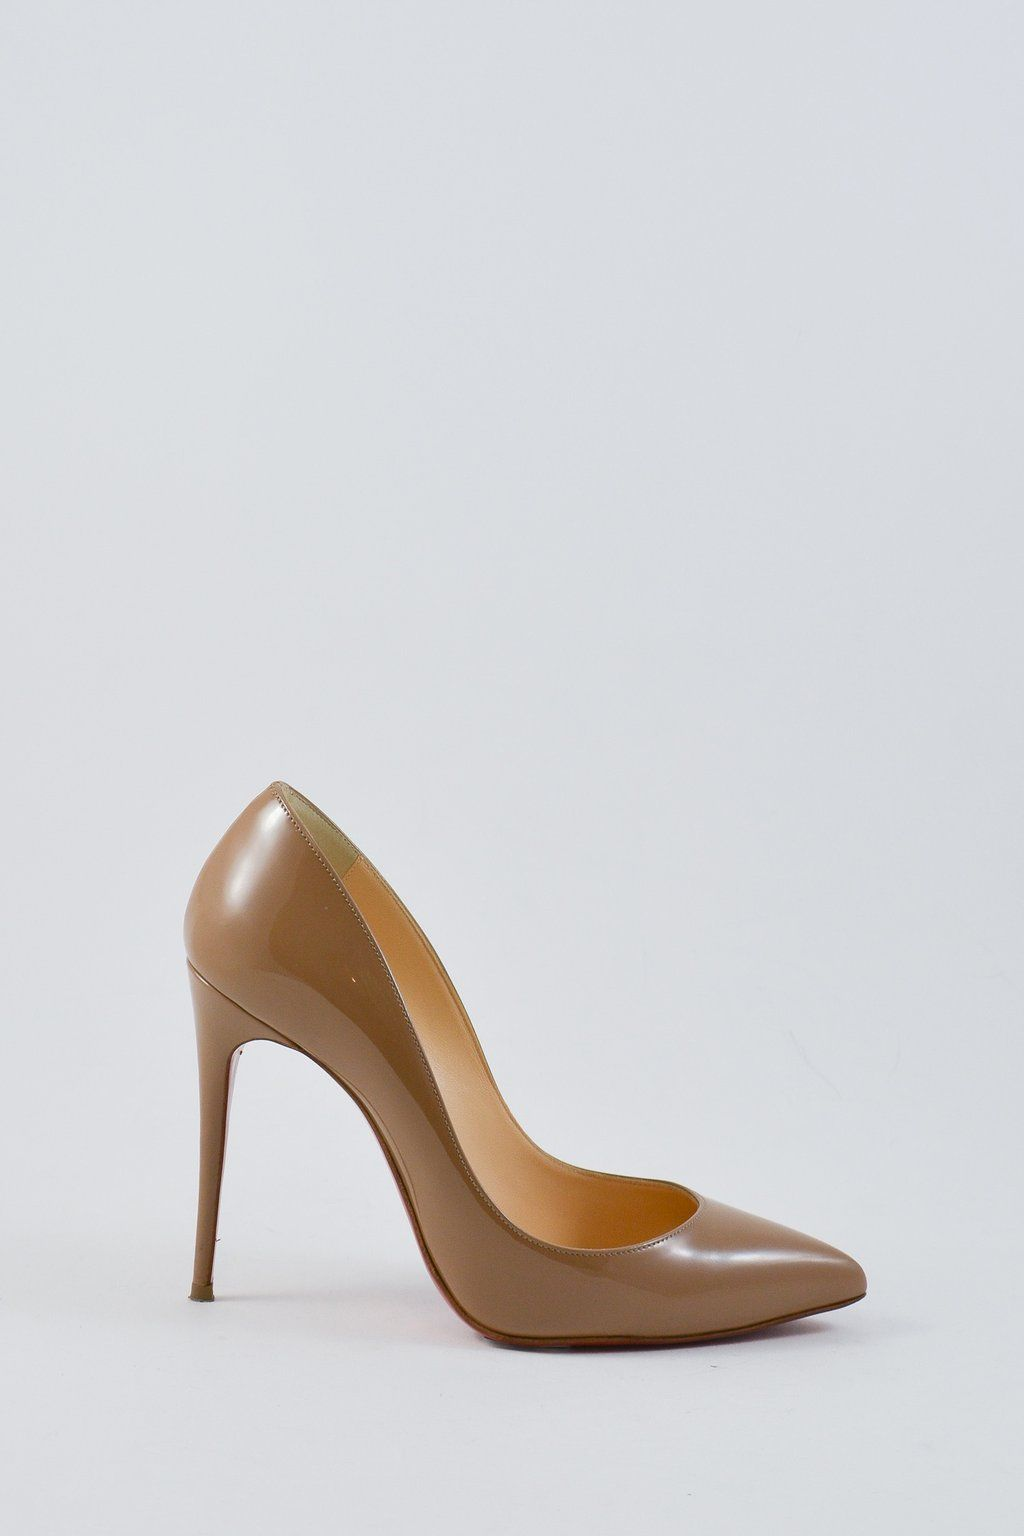 94d49137e Louboutin closed pointed toe light brown/nude pumps. Features patent  leather all around with